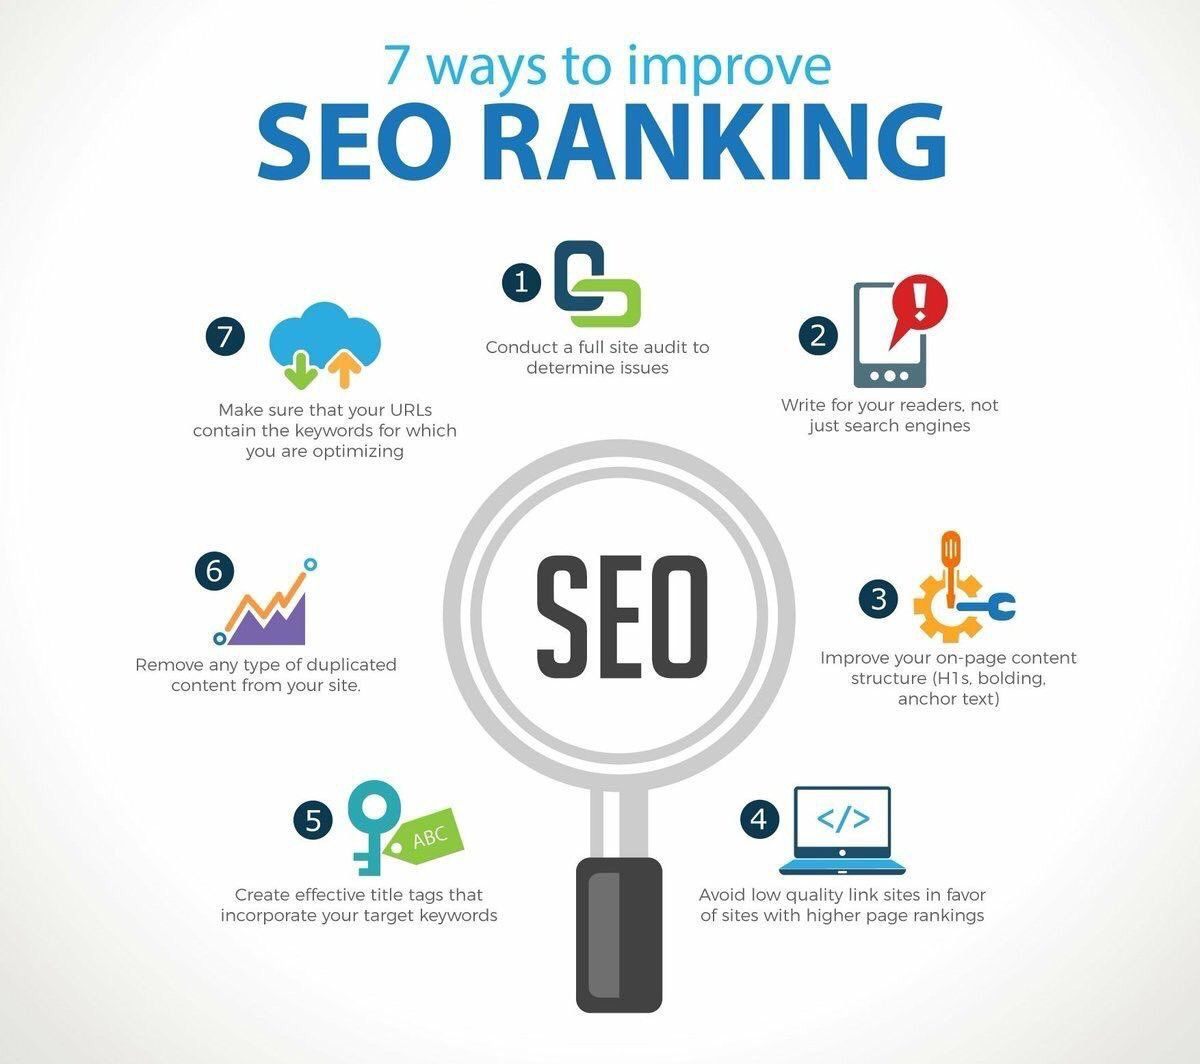 7 Effective Ways To Rank Your Website Higher On Google And Increase Your Seo Seostrategy Digitalmarketing Growthhac Online Marketing Agency Seo Seo Ranking